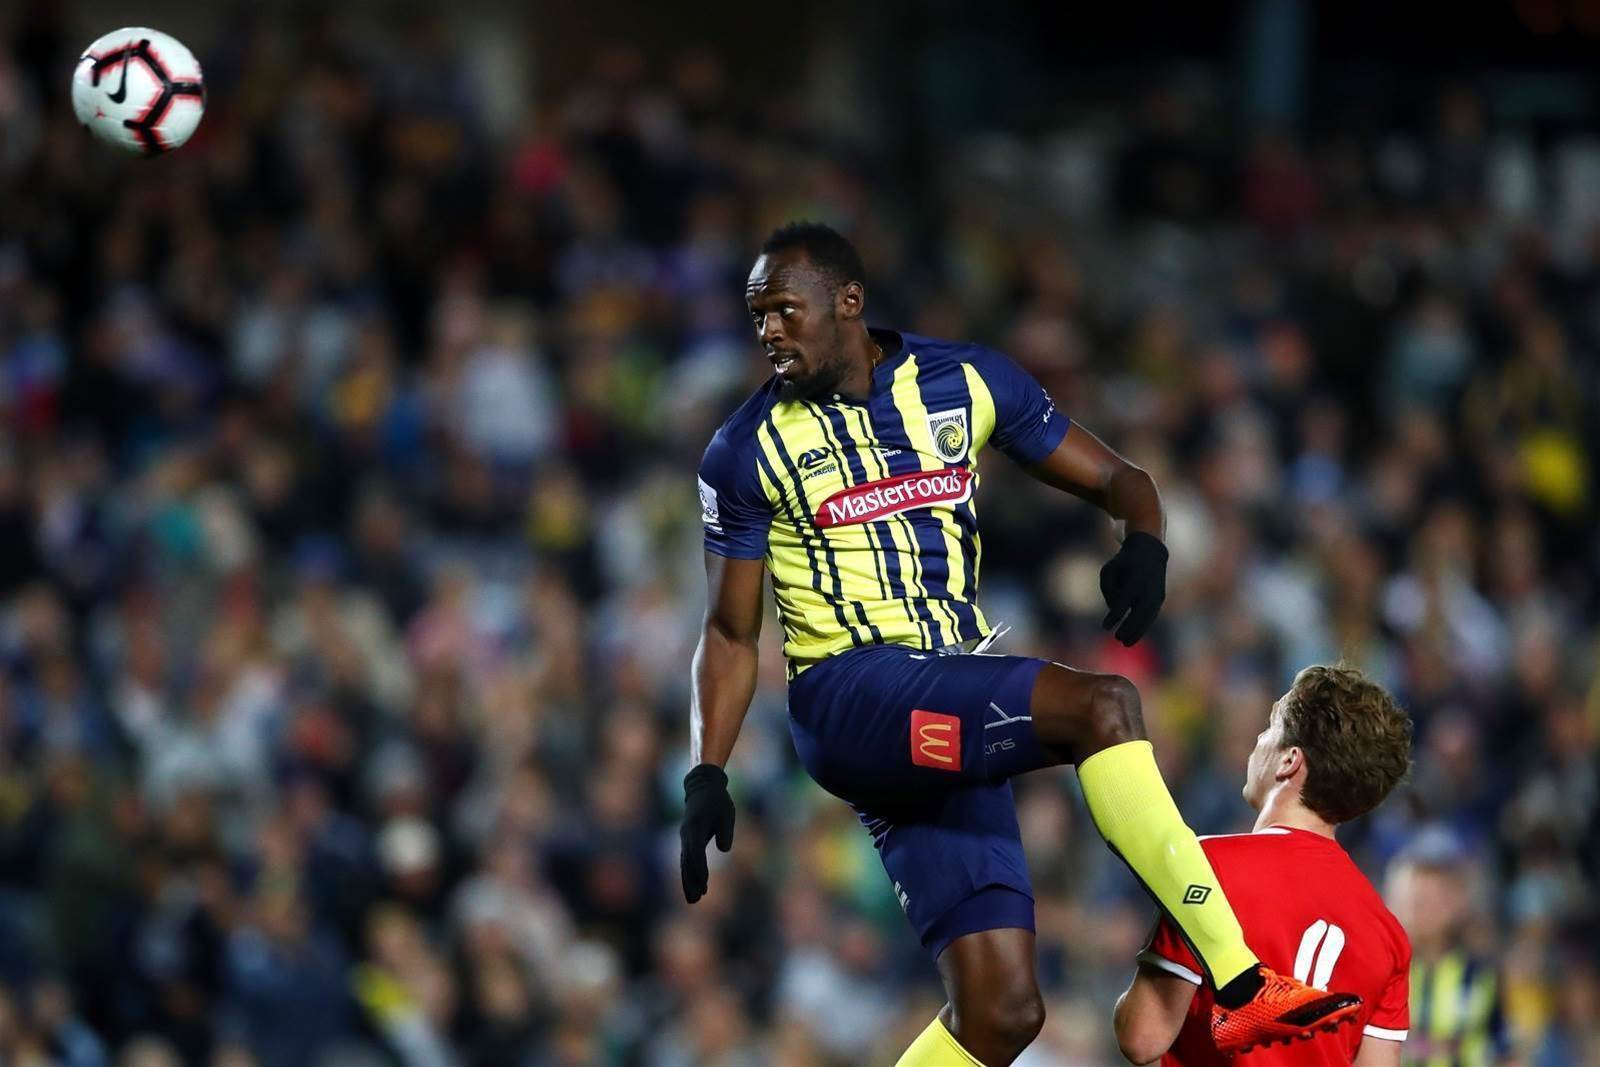 Pics: Usain Bolt's debut for Central Coast Mariners